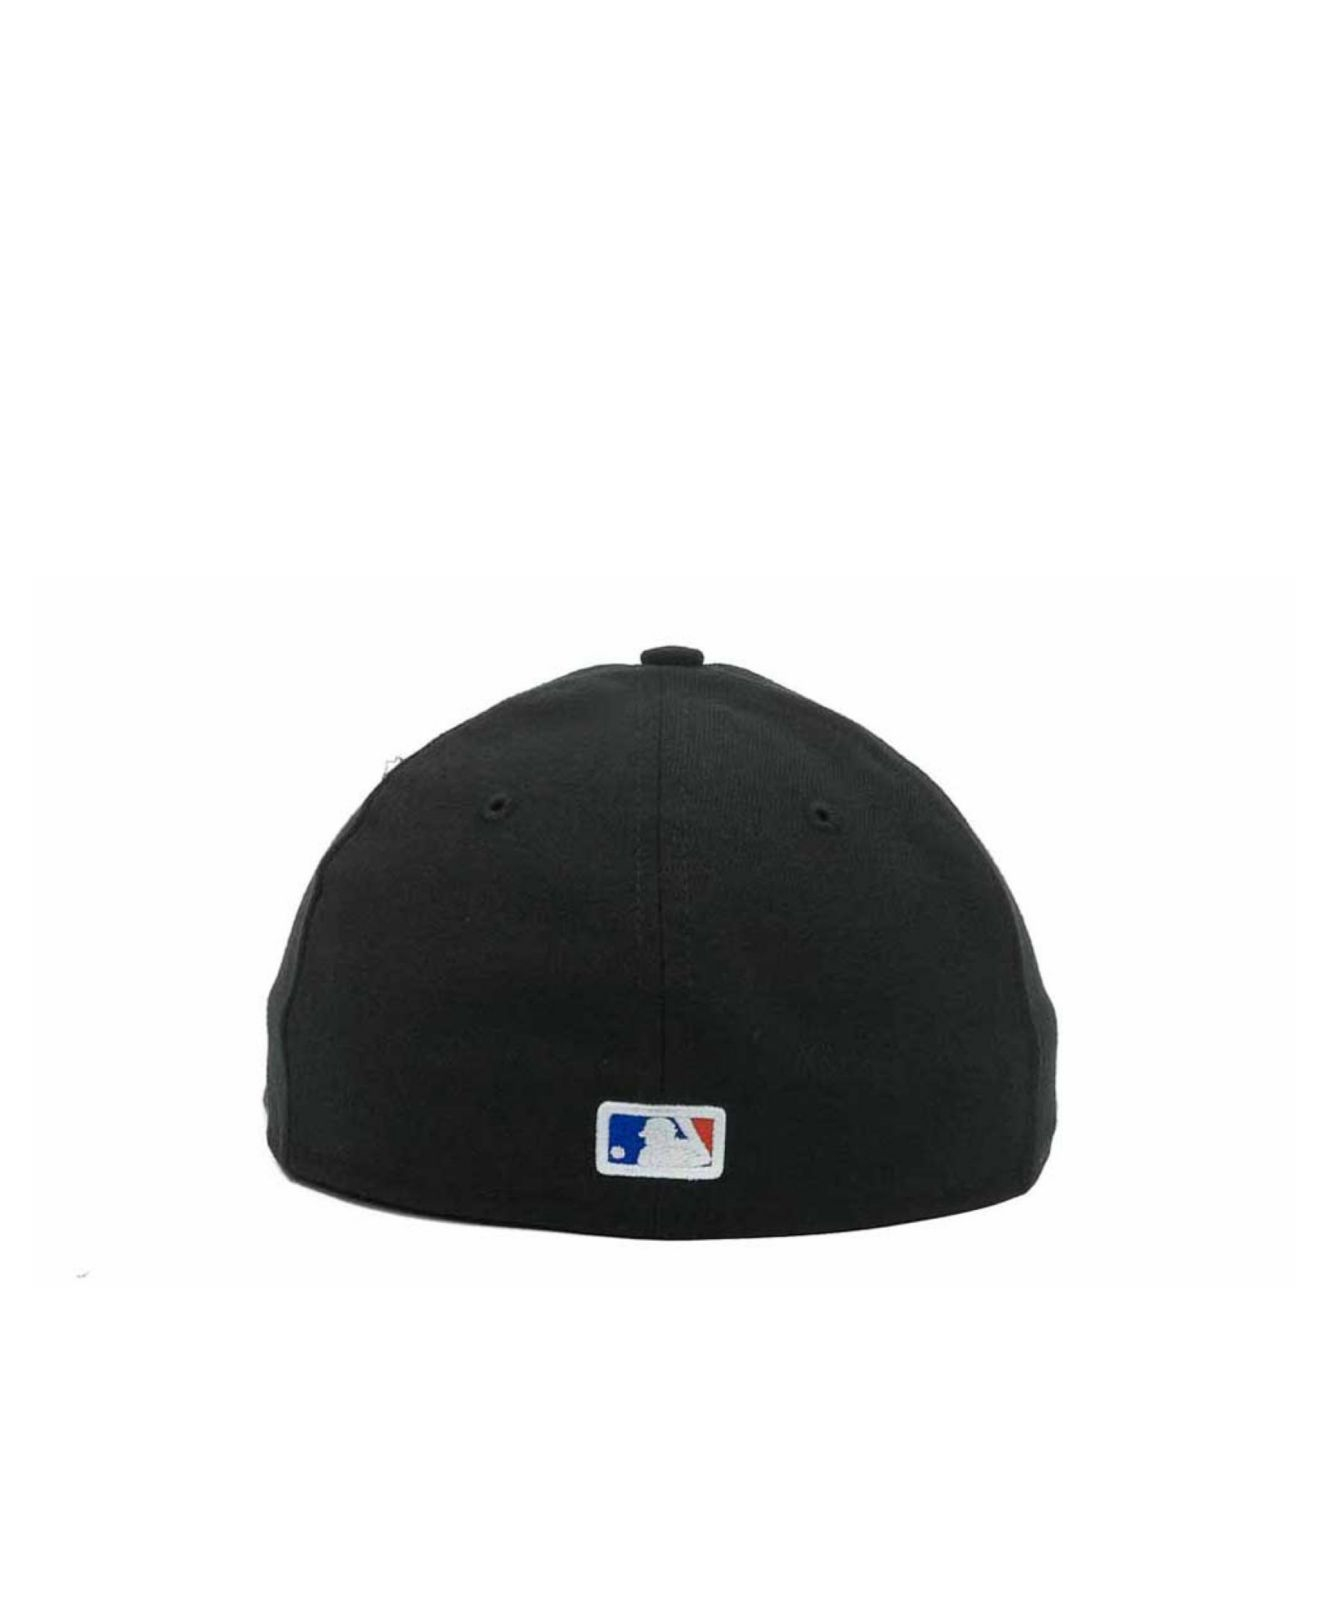 promo code 1d4f5 d5d96 ... spain lyst ktz new york mets low crown ac performance 59fifty cap in  2fa17 3cbb5